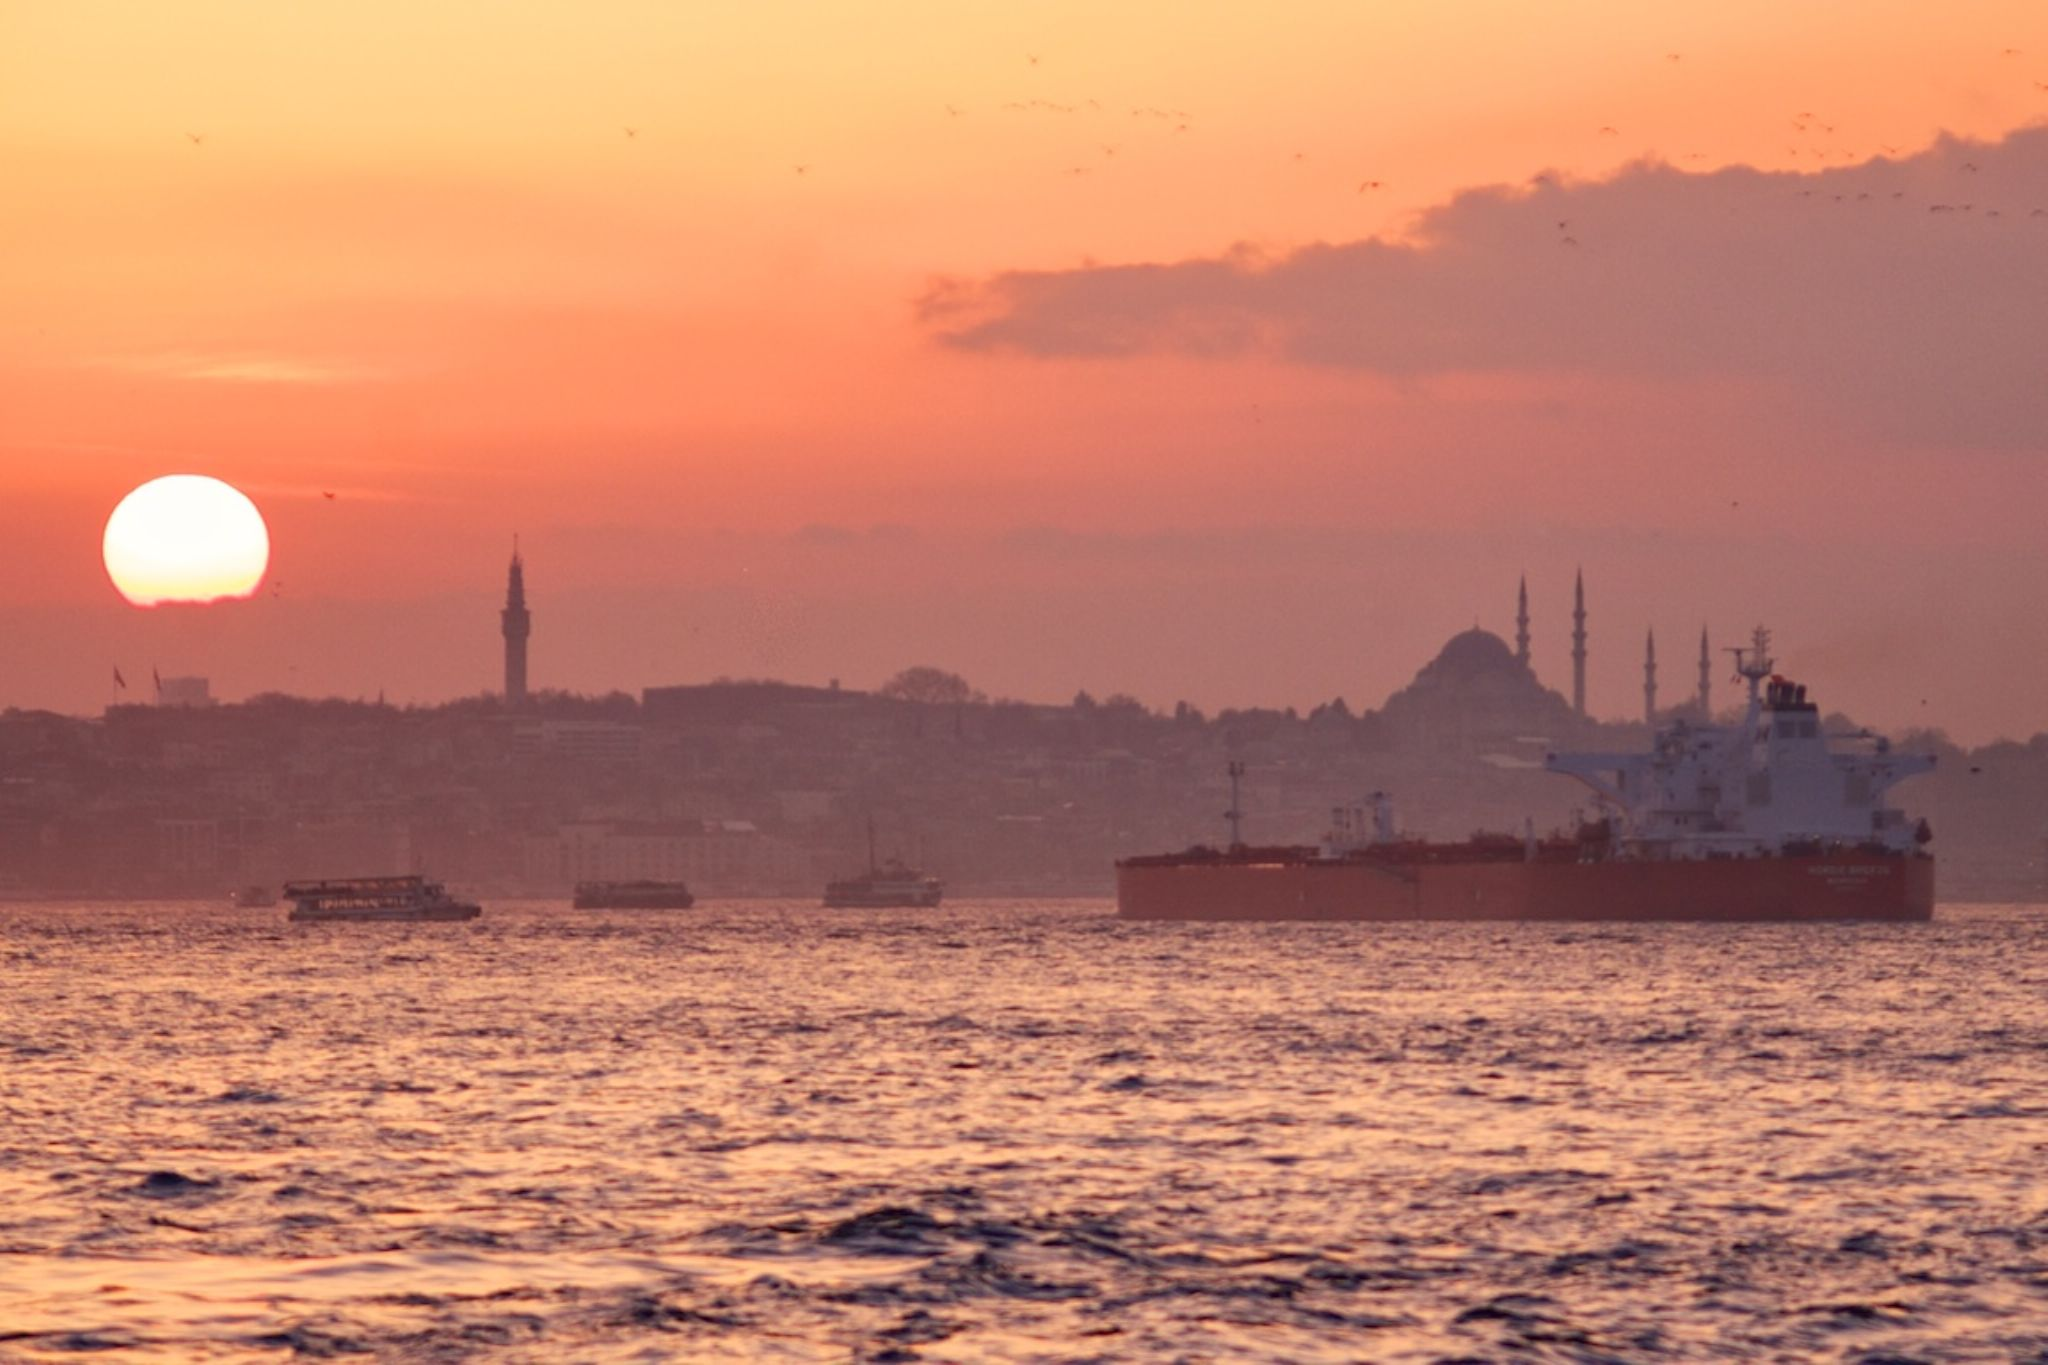 The usual bosphorus afternoon colors by Fehmi Ulgener